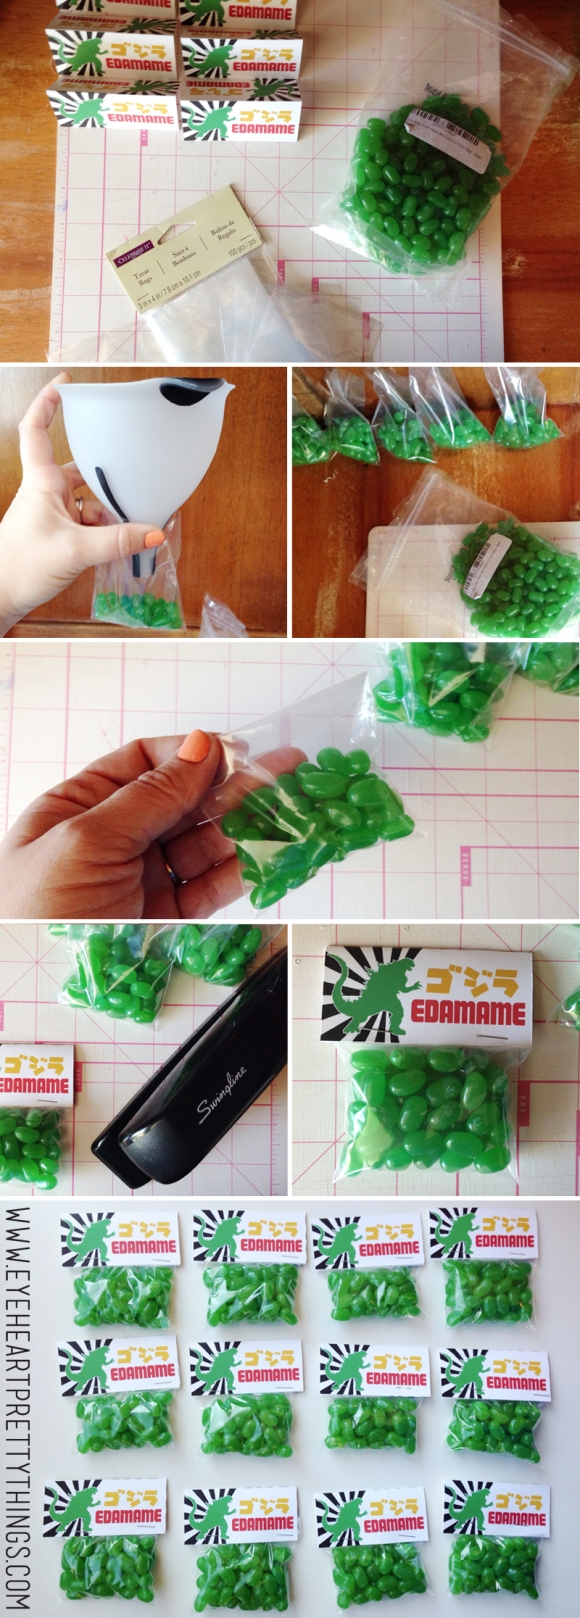 eyeheartprettythings-ninja-birthday-edamame-diy-favor